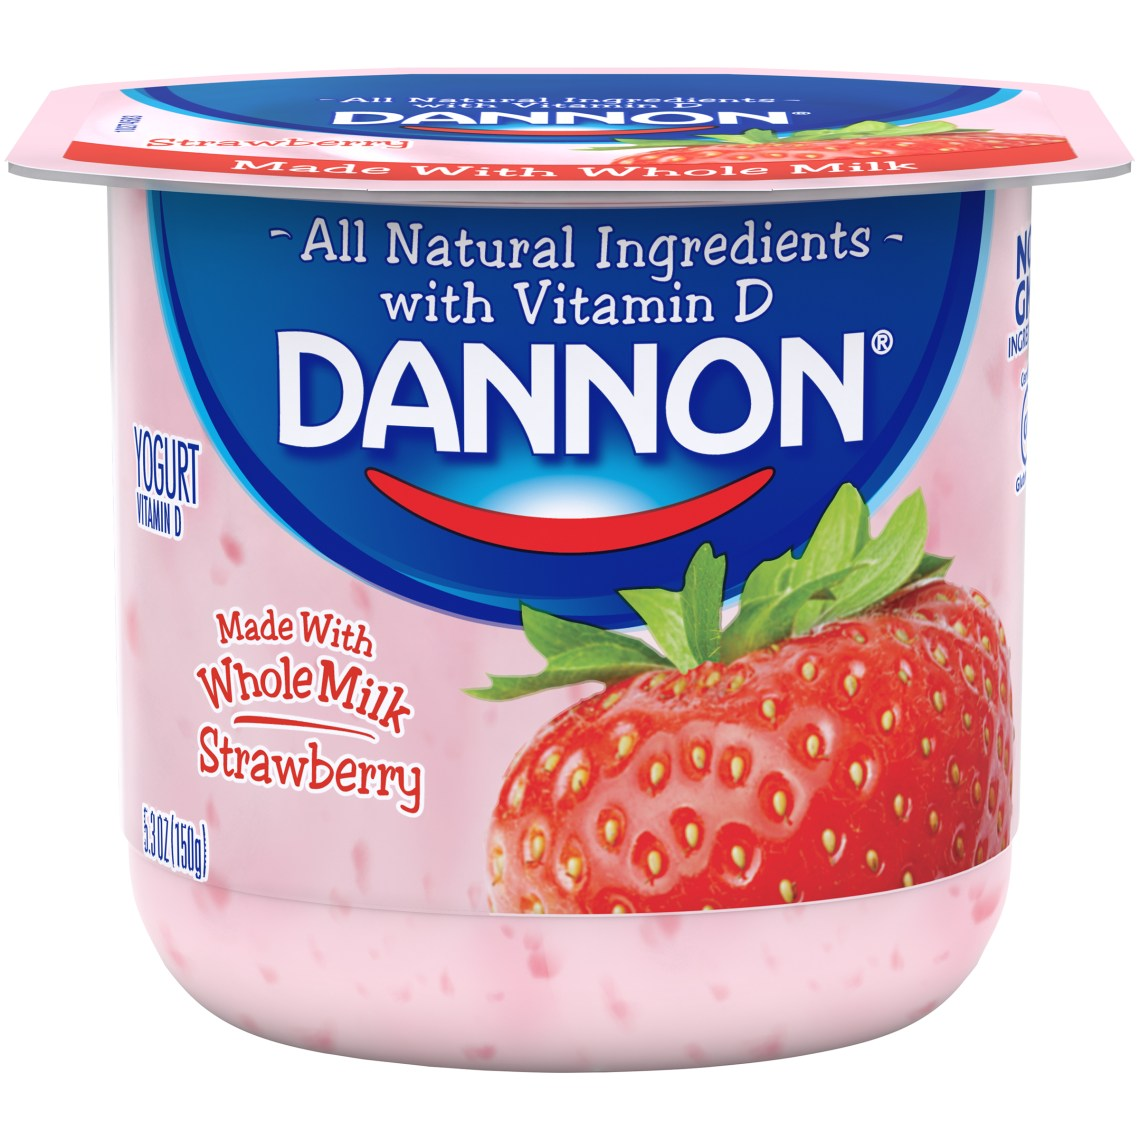 Dannon Whole Milk - Strawberry